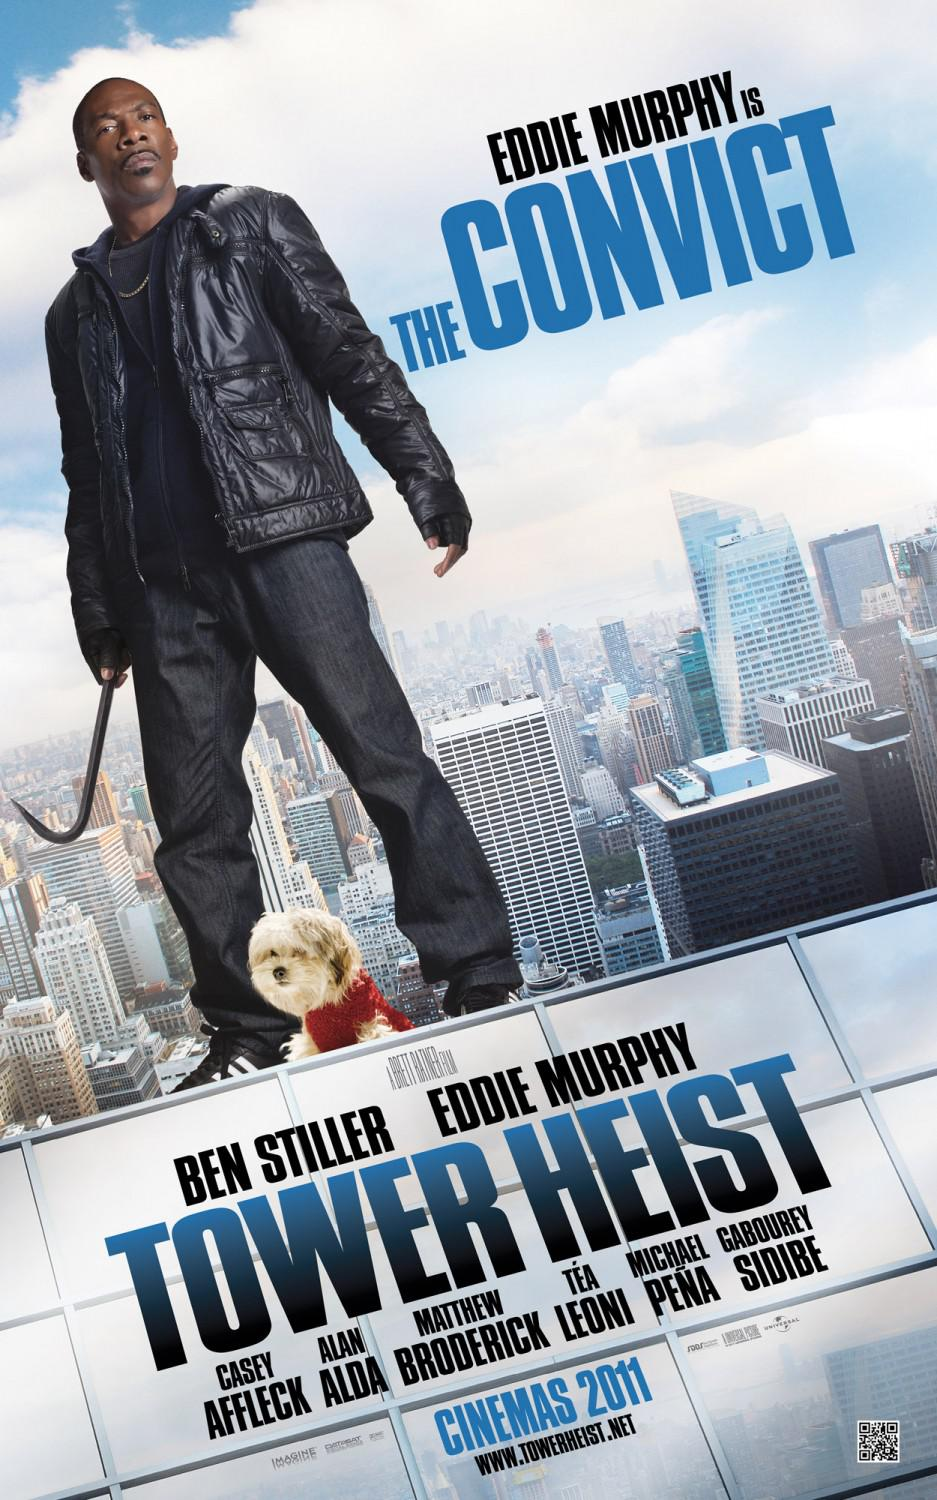 Tower heist - Eddie Murphy -  the convict poster